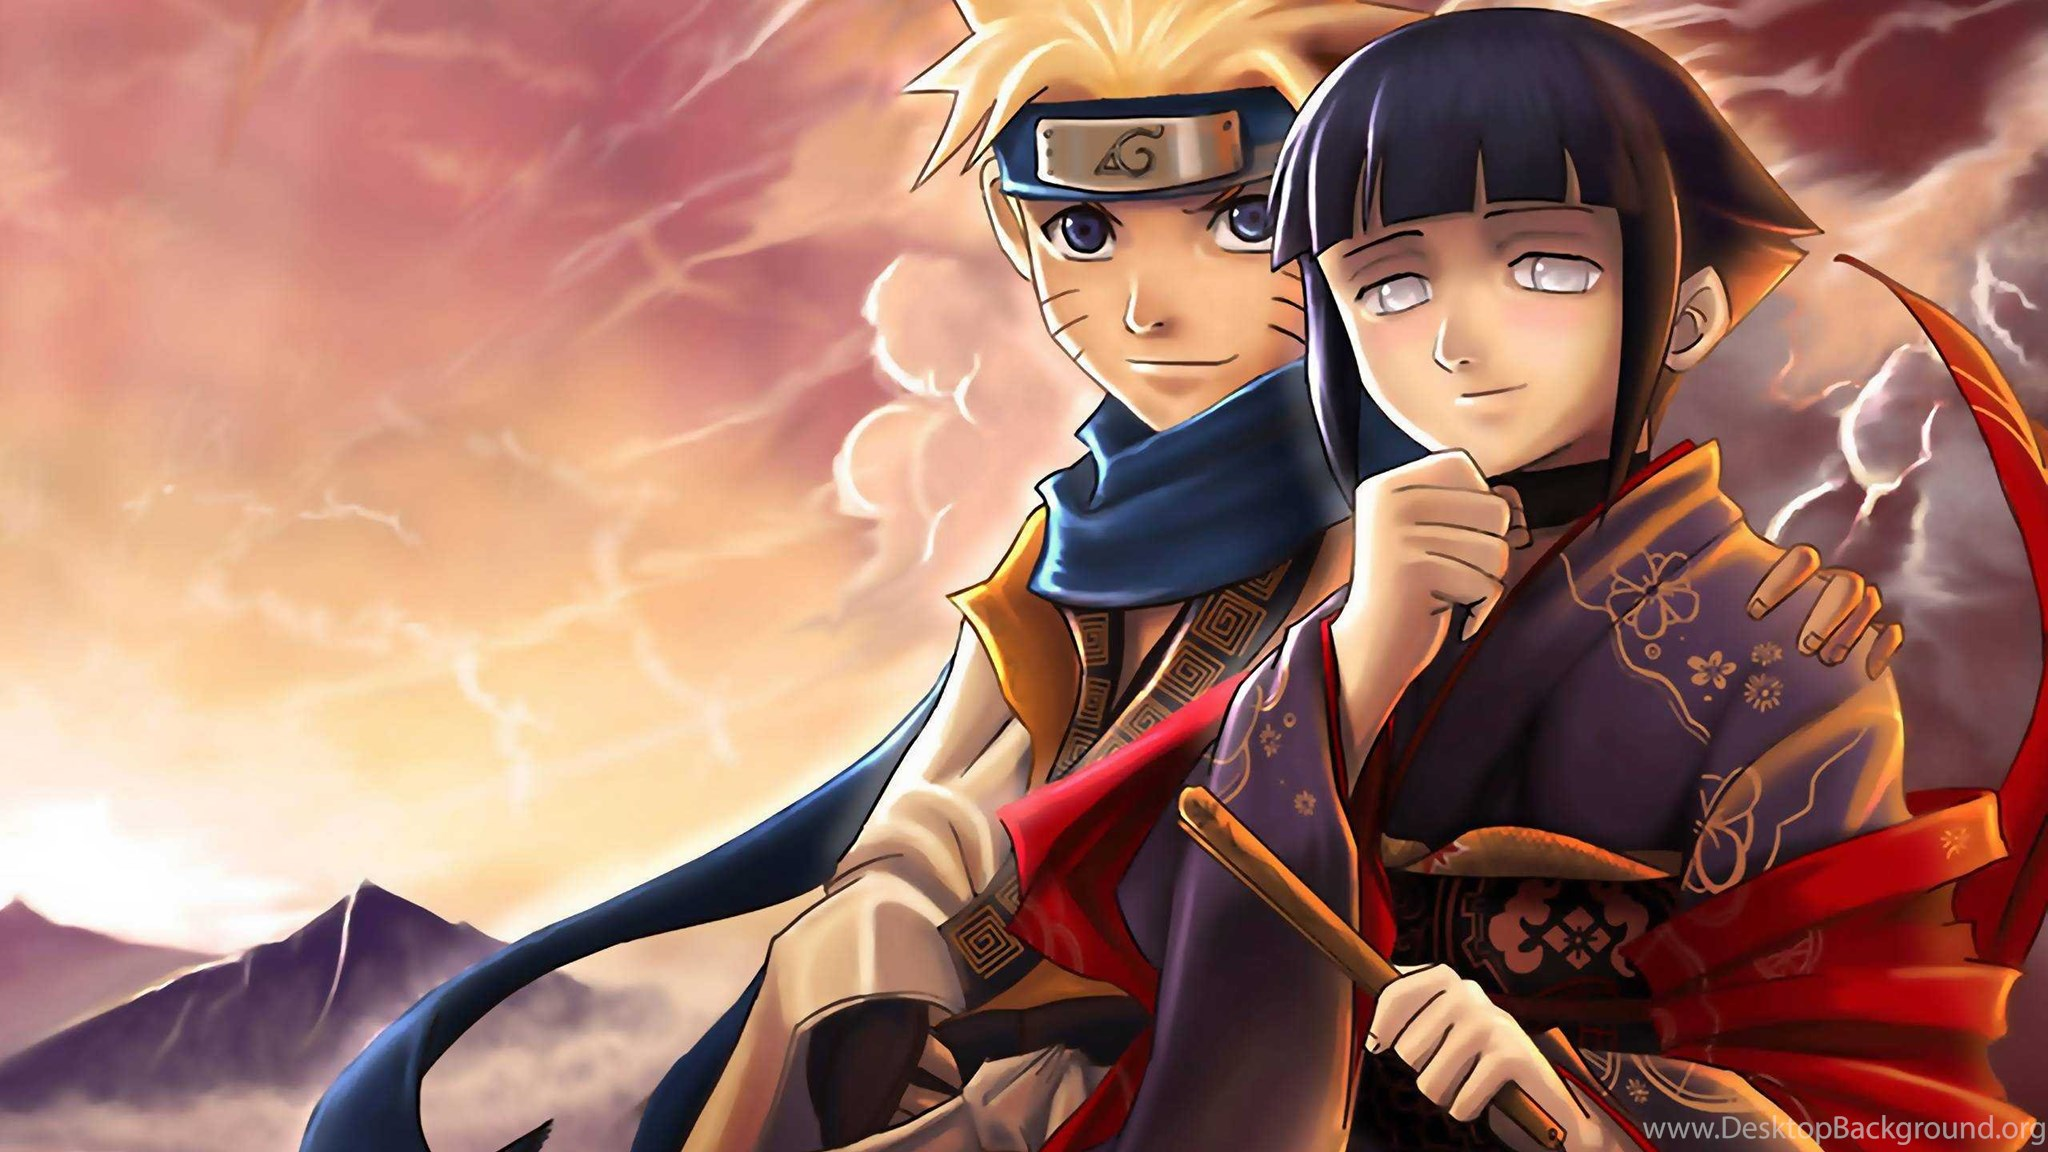 Cool Wallpaper Naruto Dual Screen - 736756_naruto-wallpapers-hd-lr6-walleo-co-walleo-co_2560x1600_h  You Should Have_798663.jpg